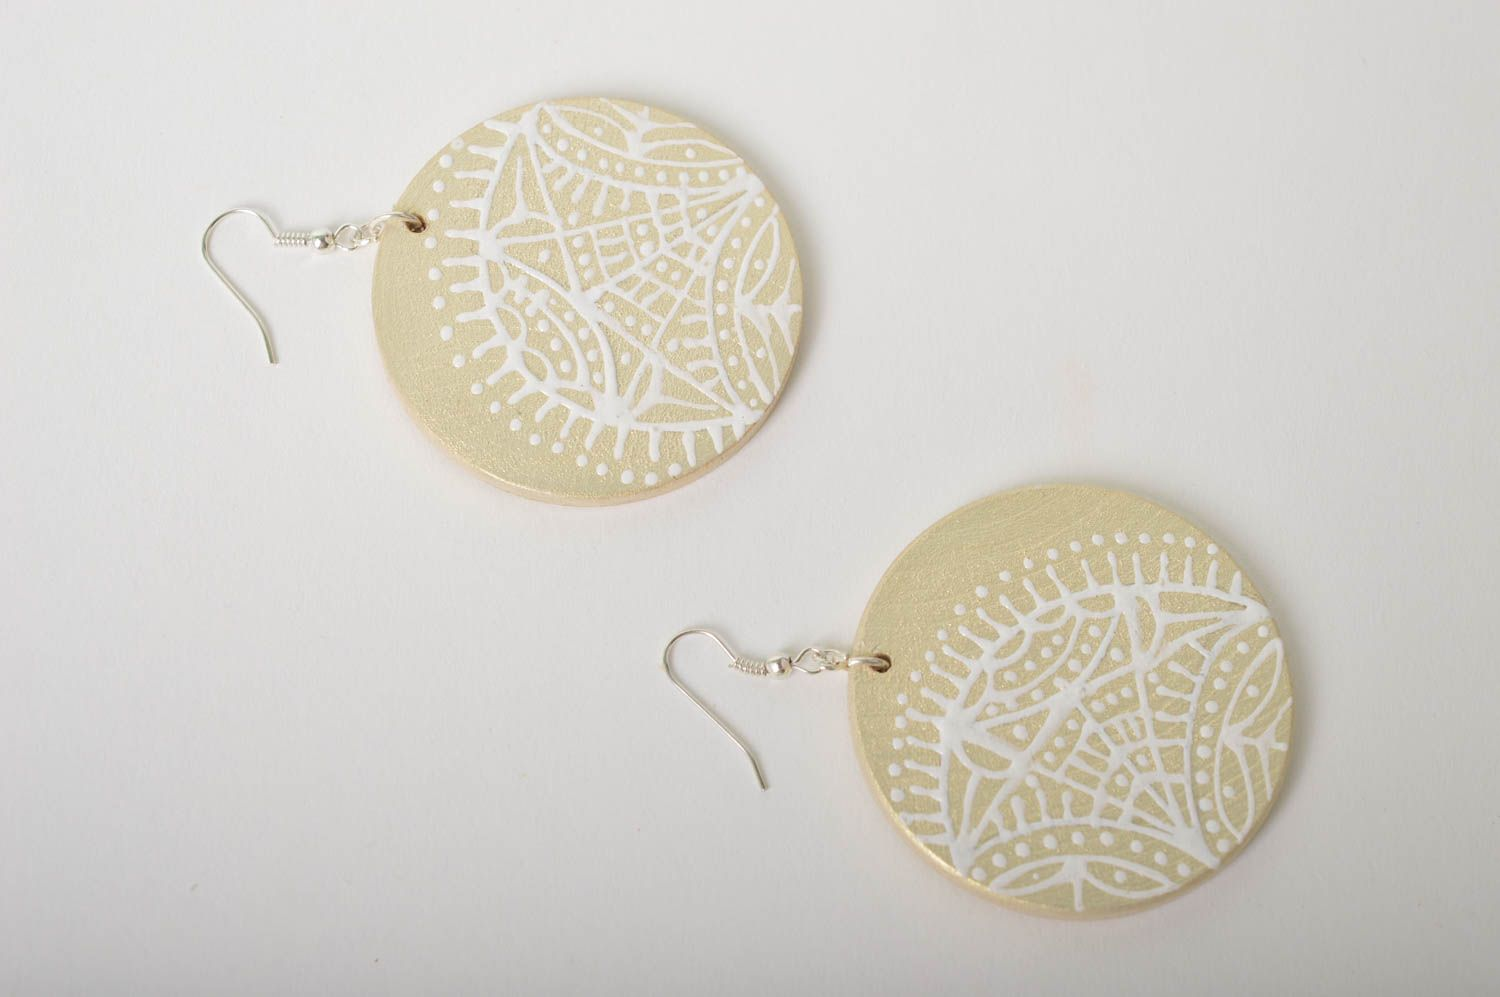 Handmade wooden earrings wooden jewelry round painted earrings women jewelry photo 5